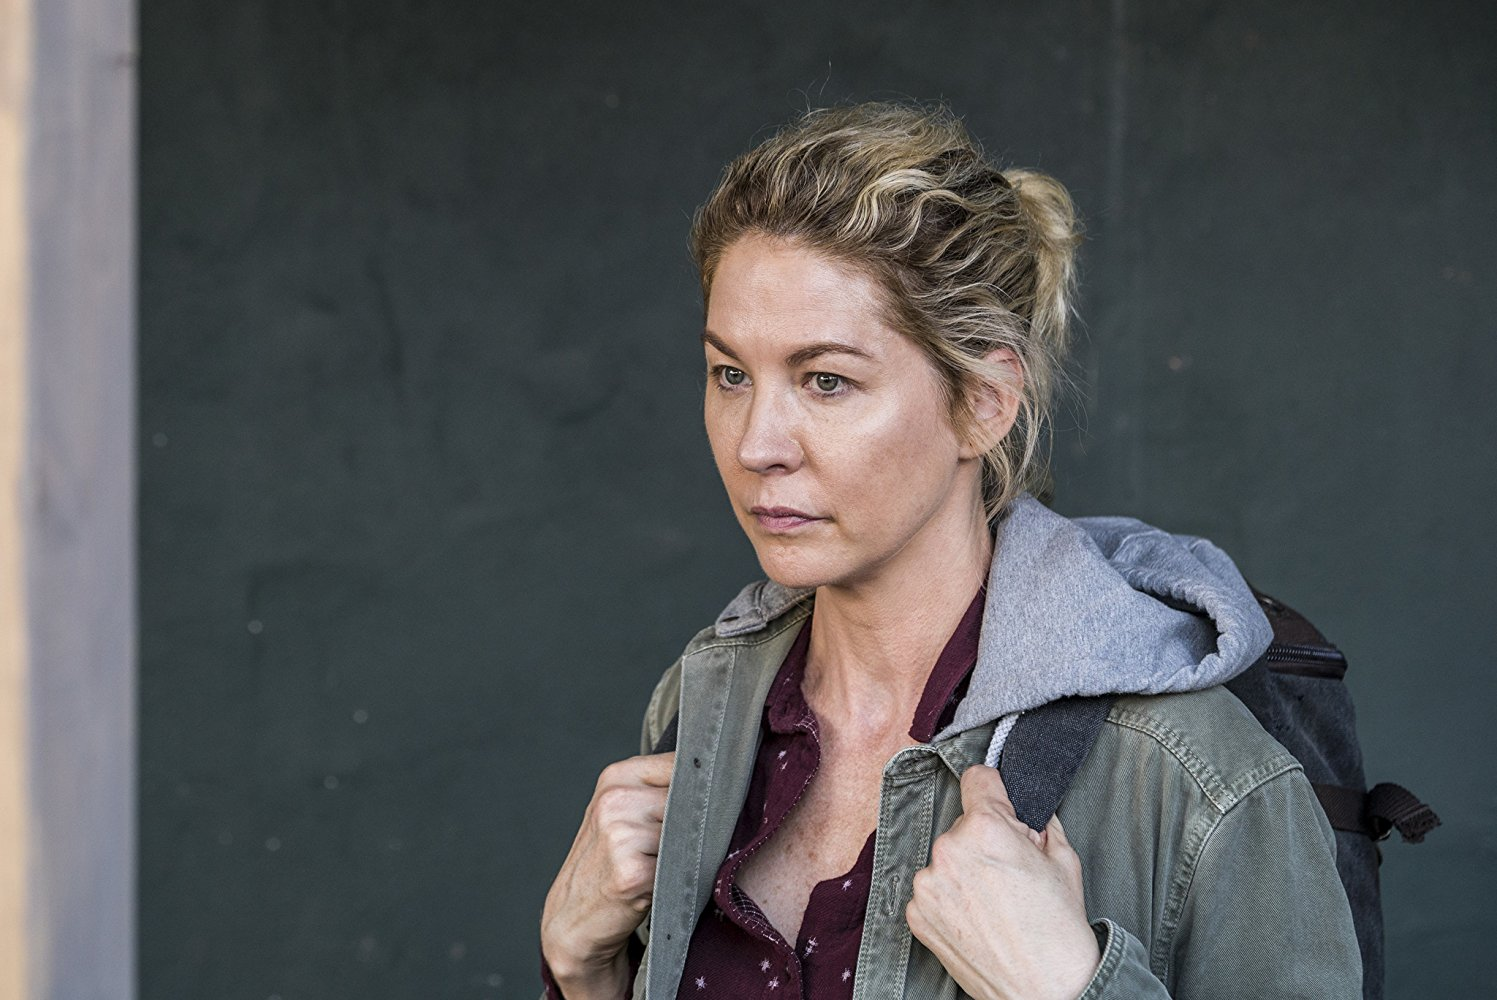 Naomi, en el episodio 4x03 de Fear The Walking Dead